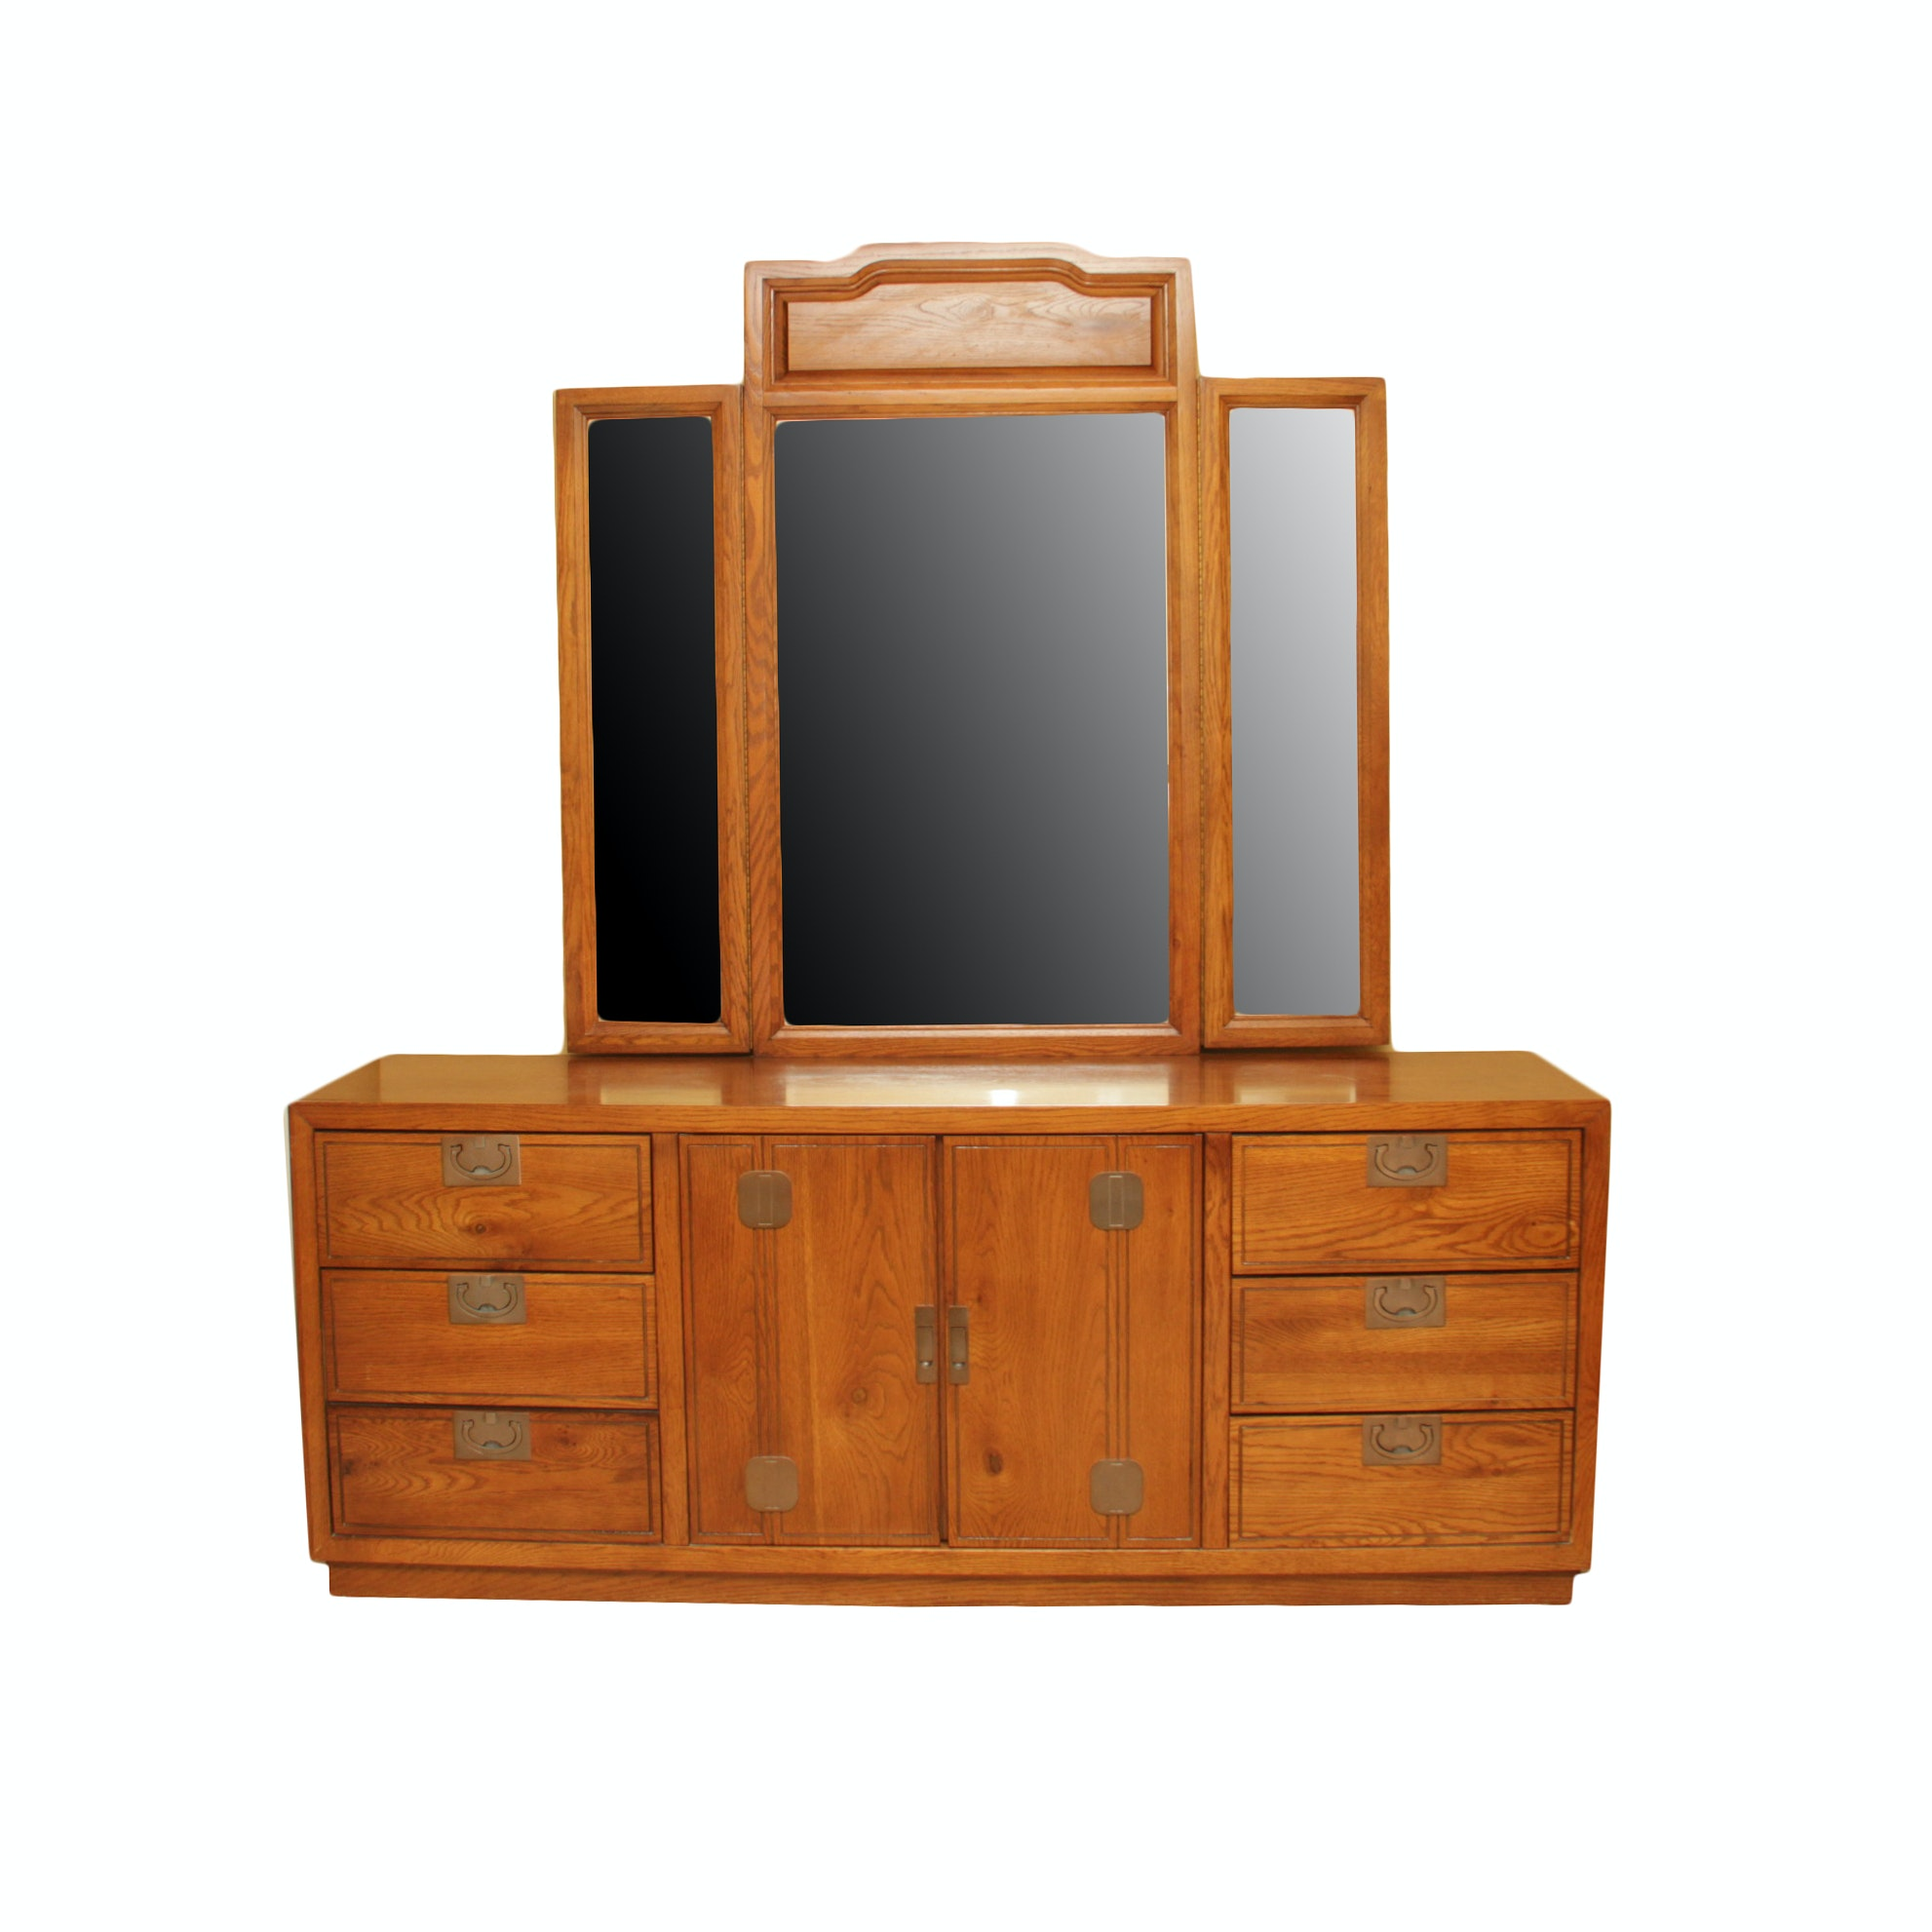 Vintage Campaign Style Oak Dresser With Mirror by Bassett